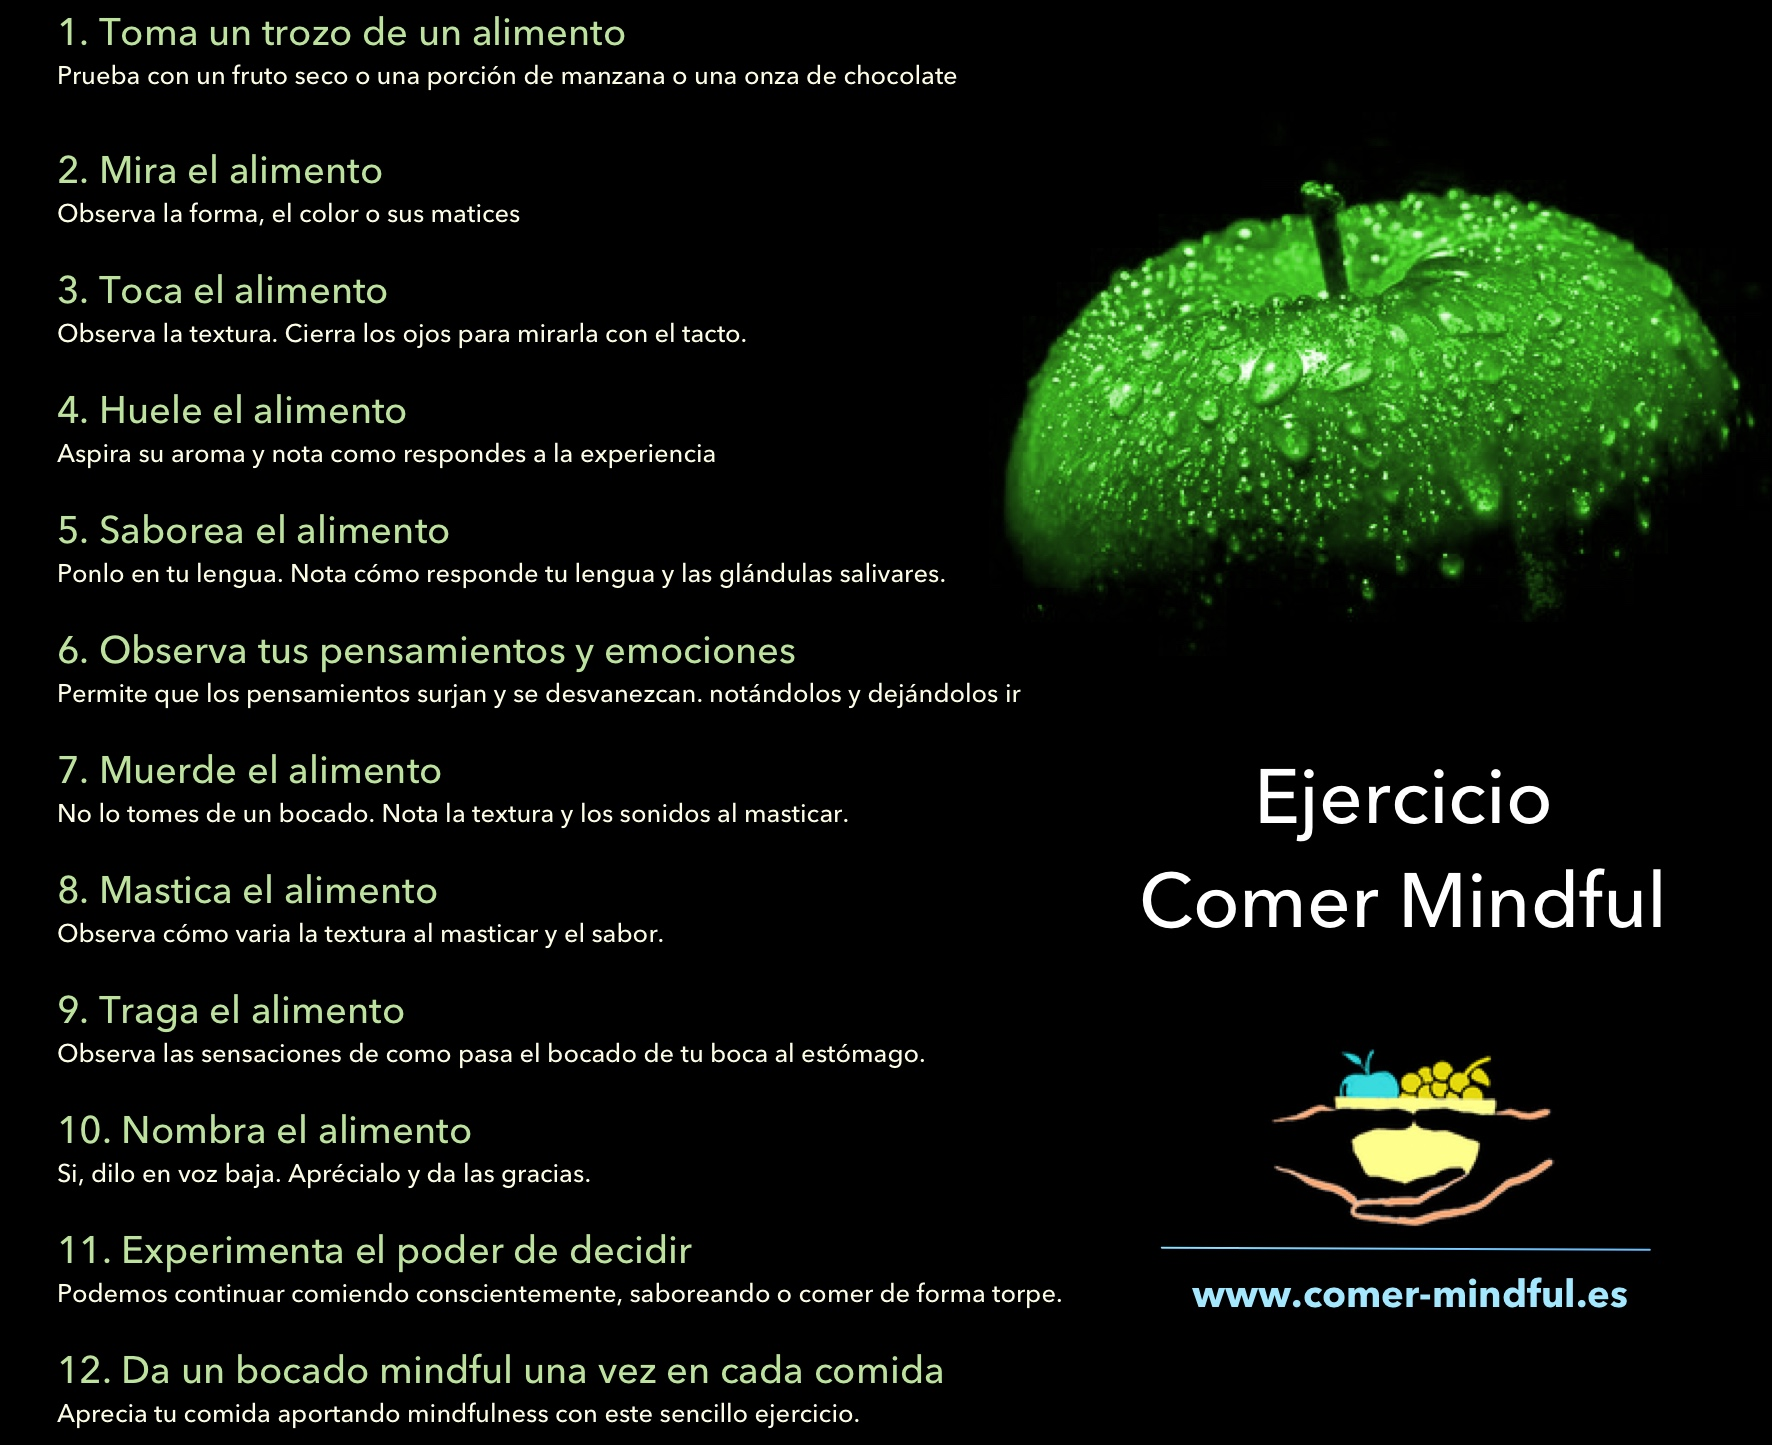 ejercicio-comer-mindful